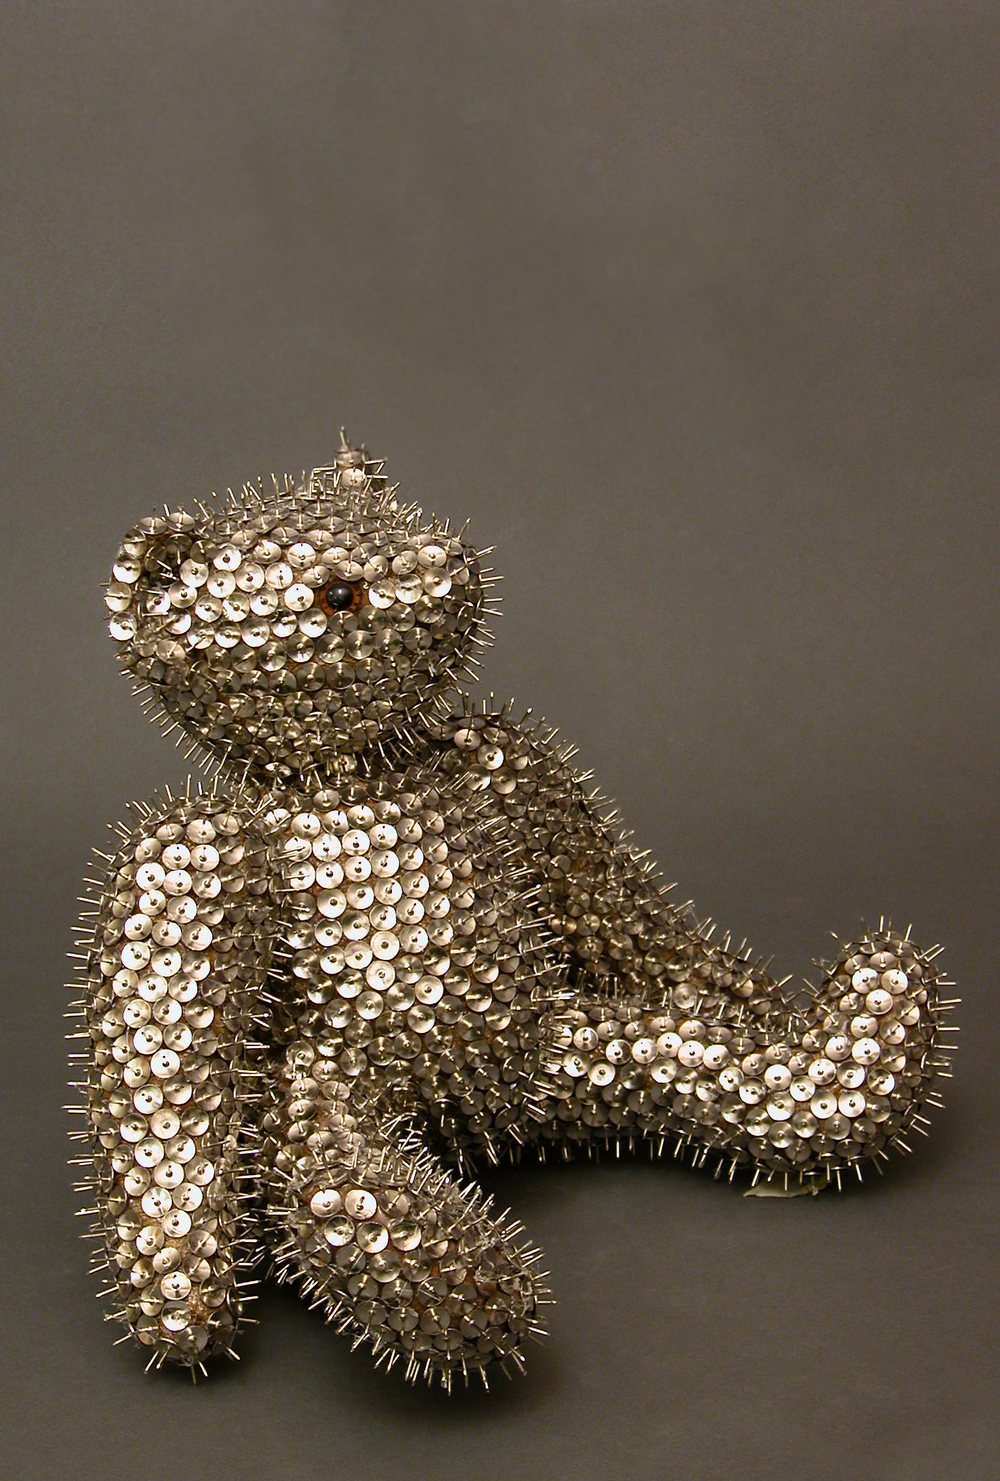 6. Spikey Teddy Bear